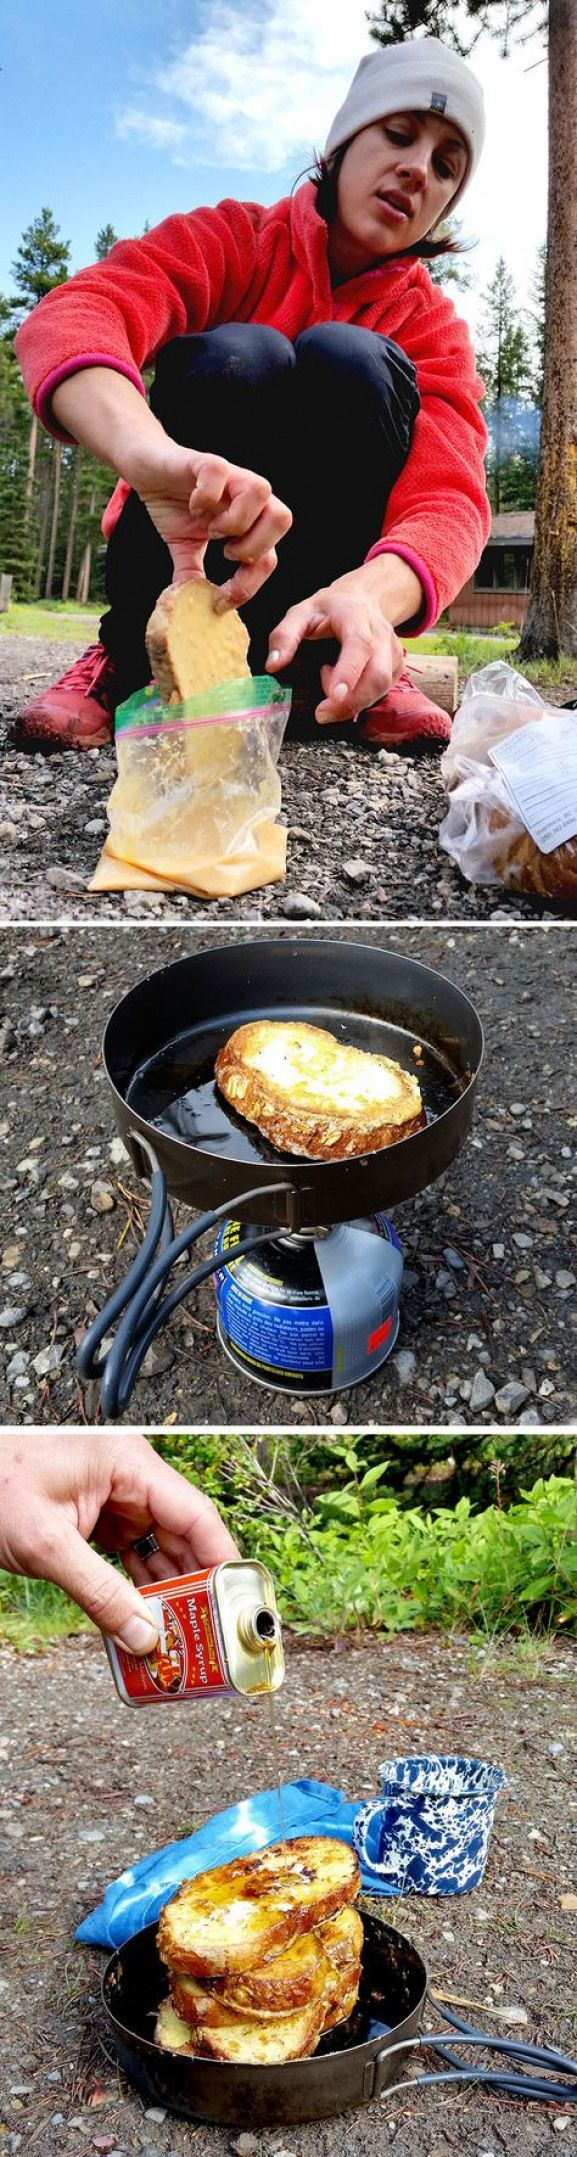 Backpacking French Toast This turns out great with dehydrated eggs. More